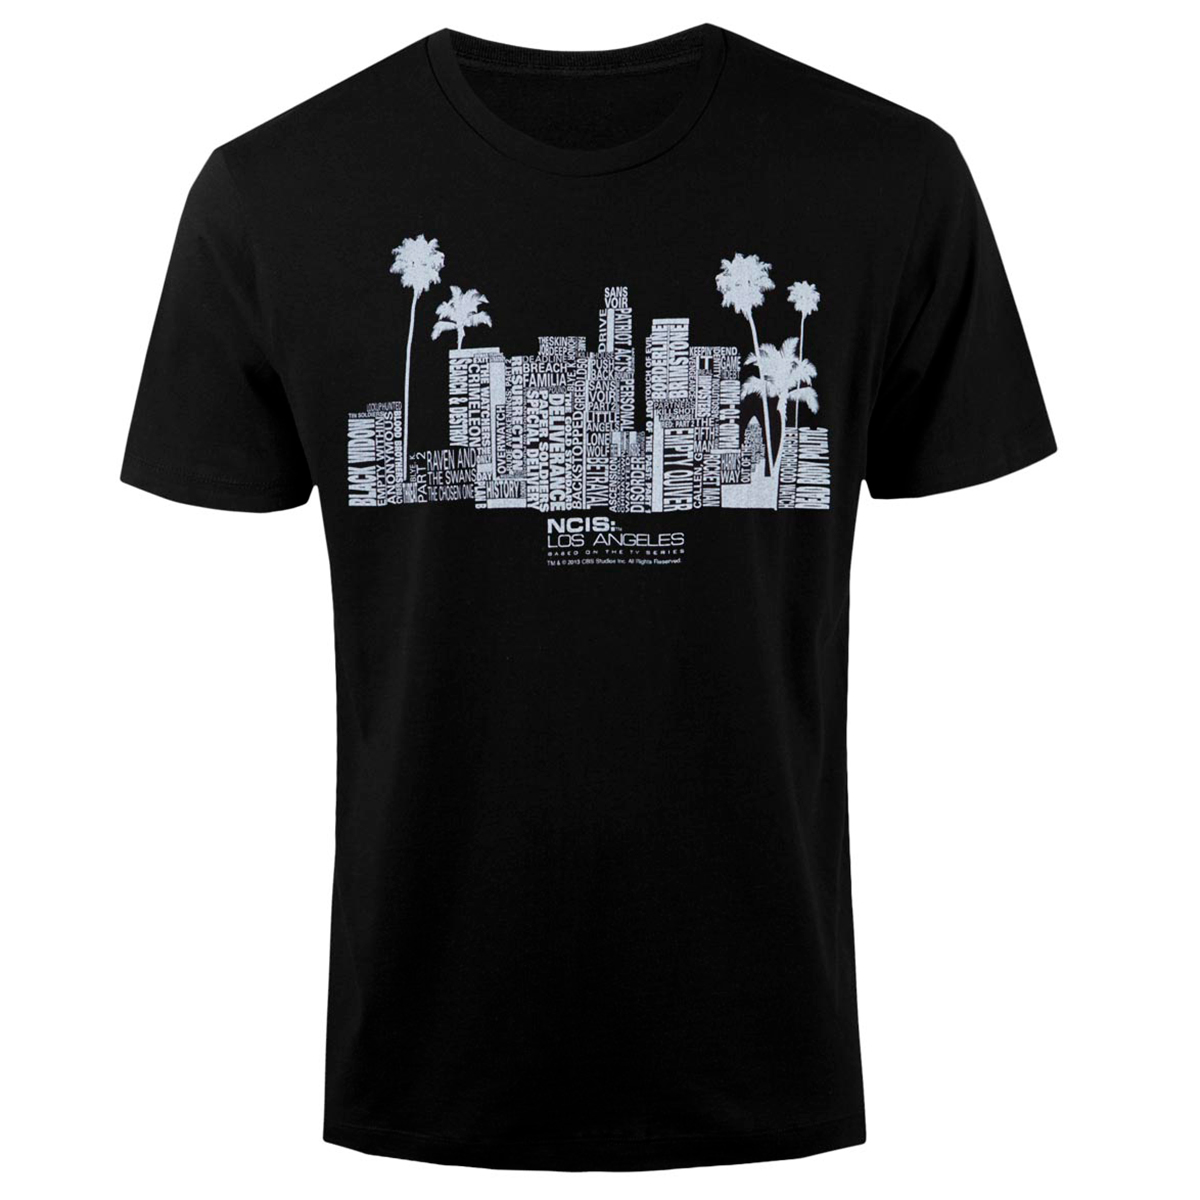 NCIS: LA 100th Episode T-Shirt